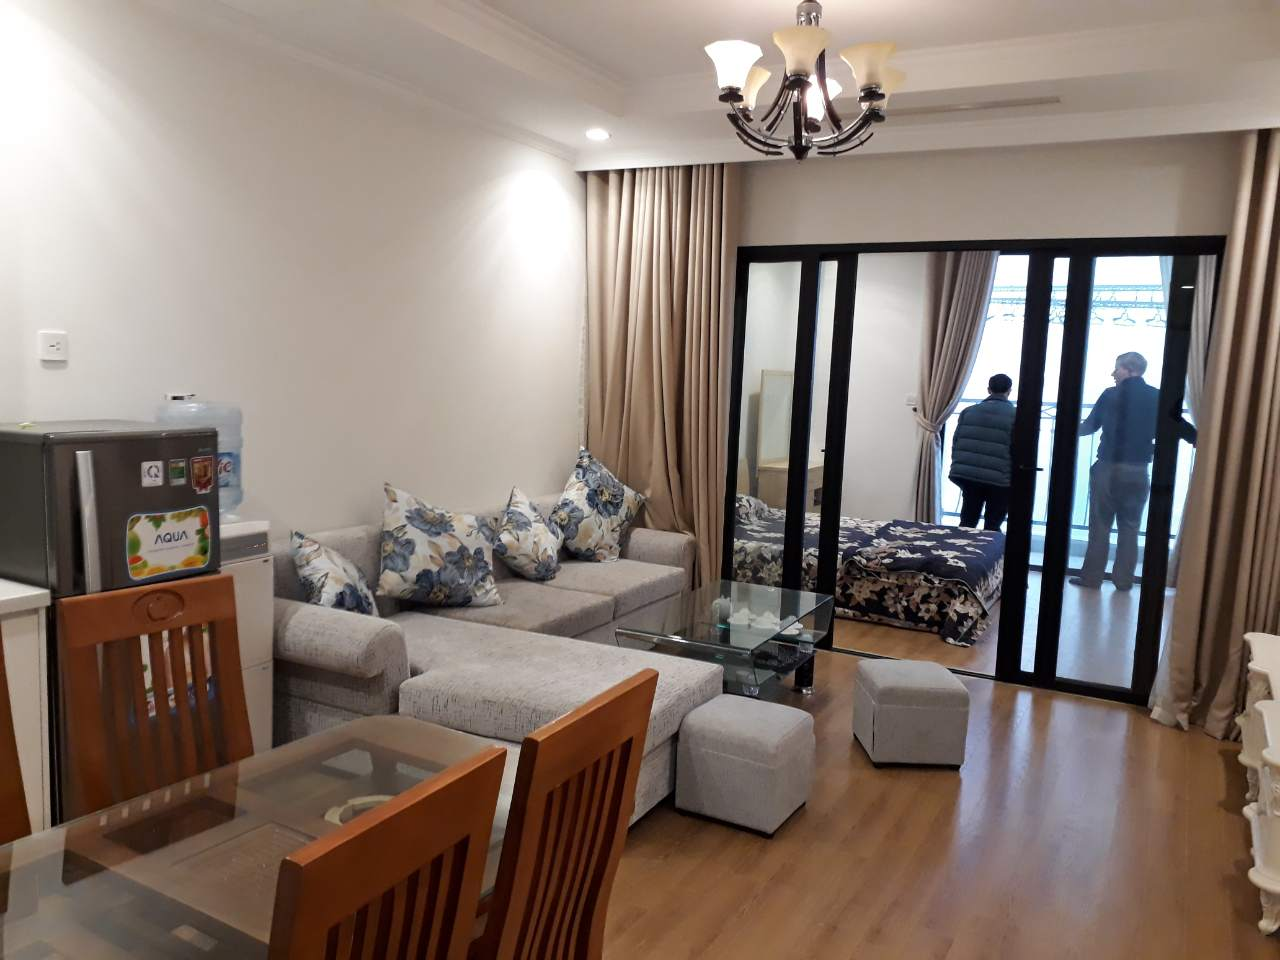 One Bedroom for rent in R6 Royal City, Hanoi